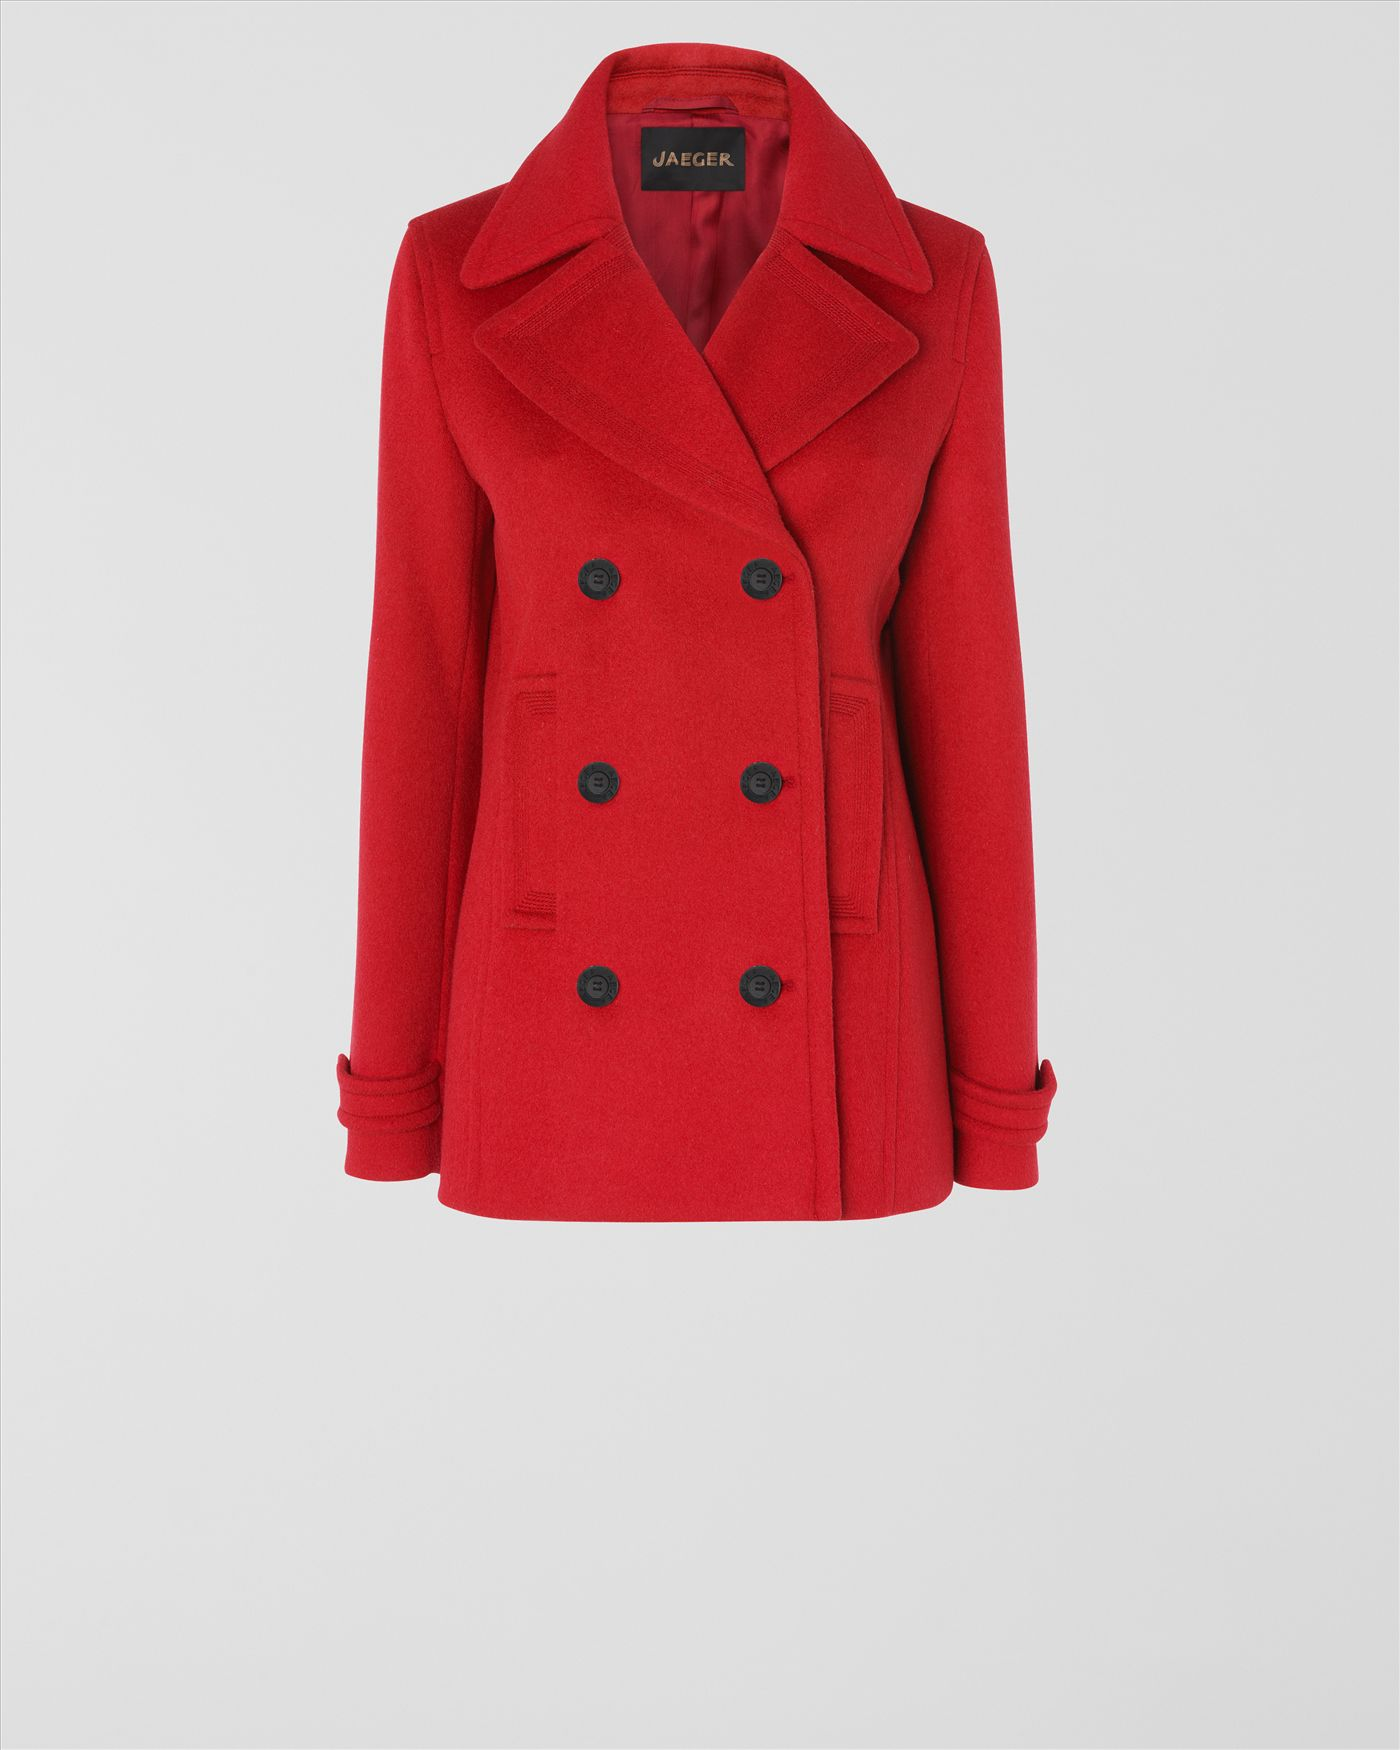 Jaeger Short Pea Coat in Red | Lyst